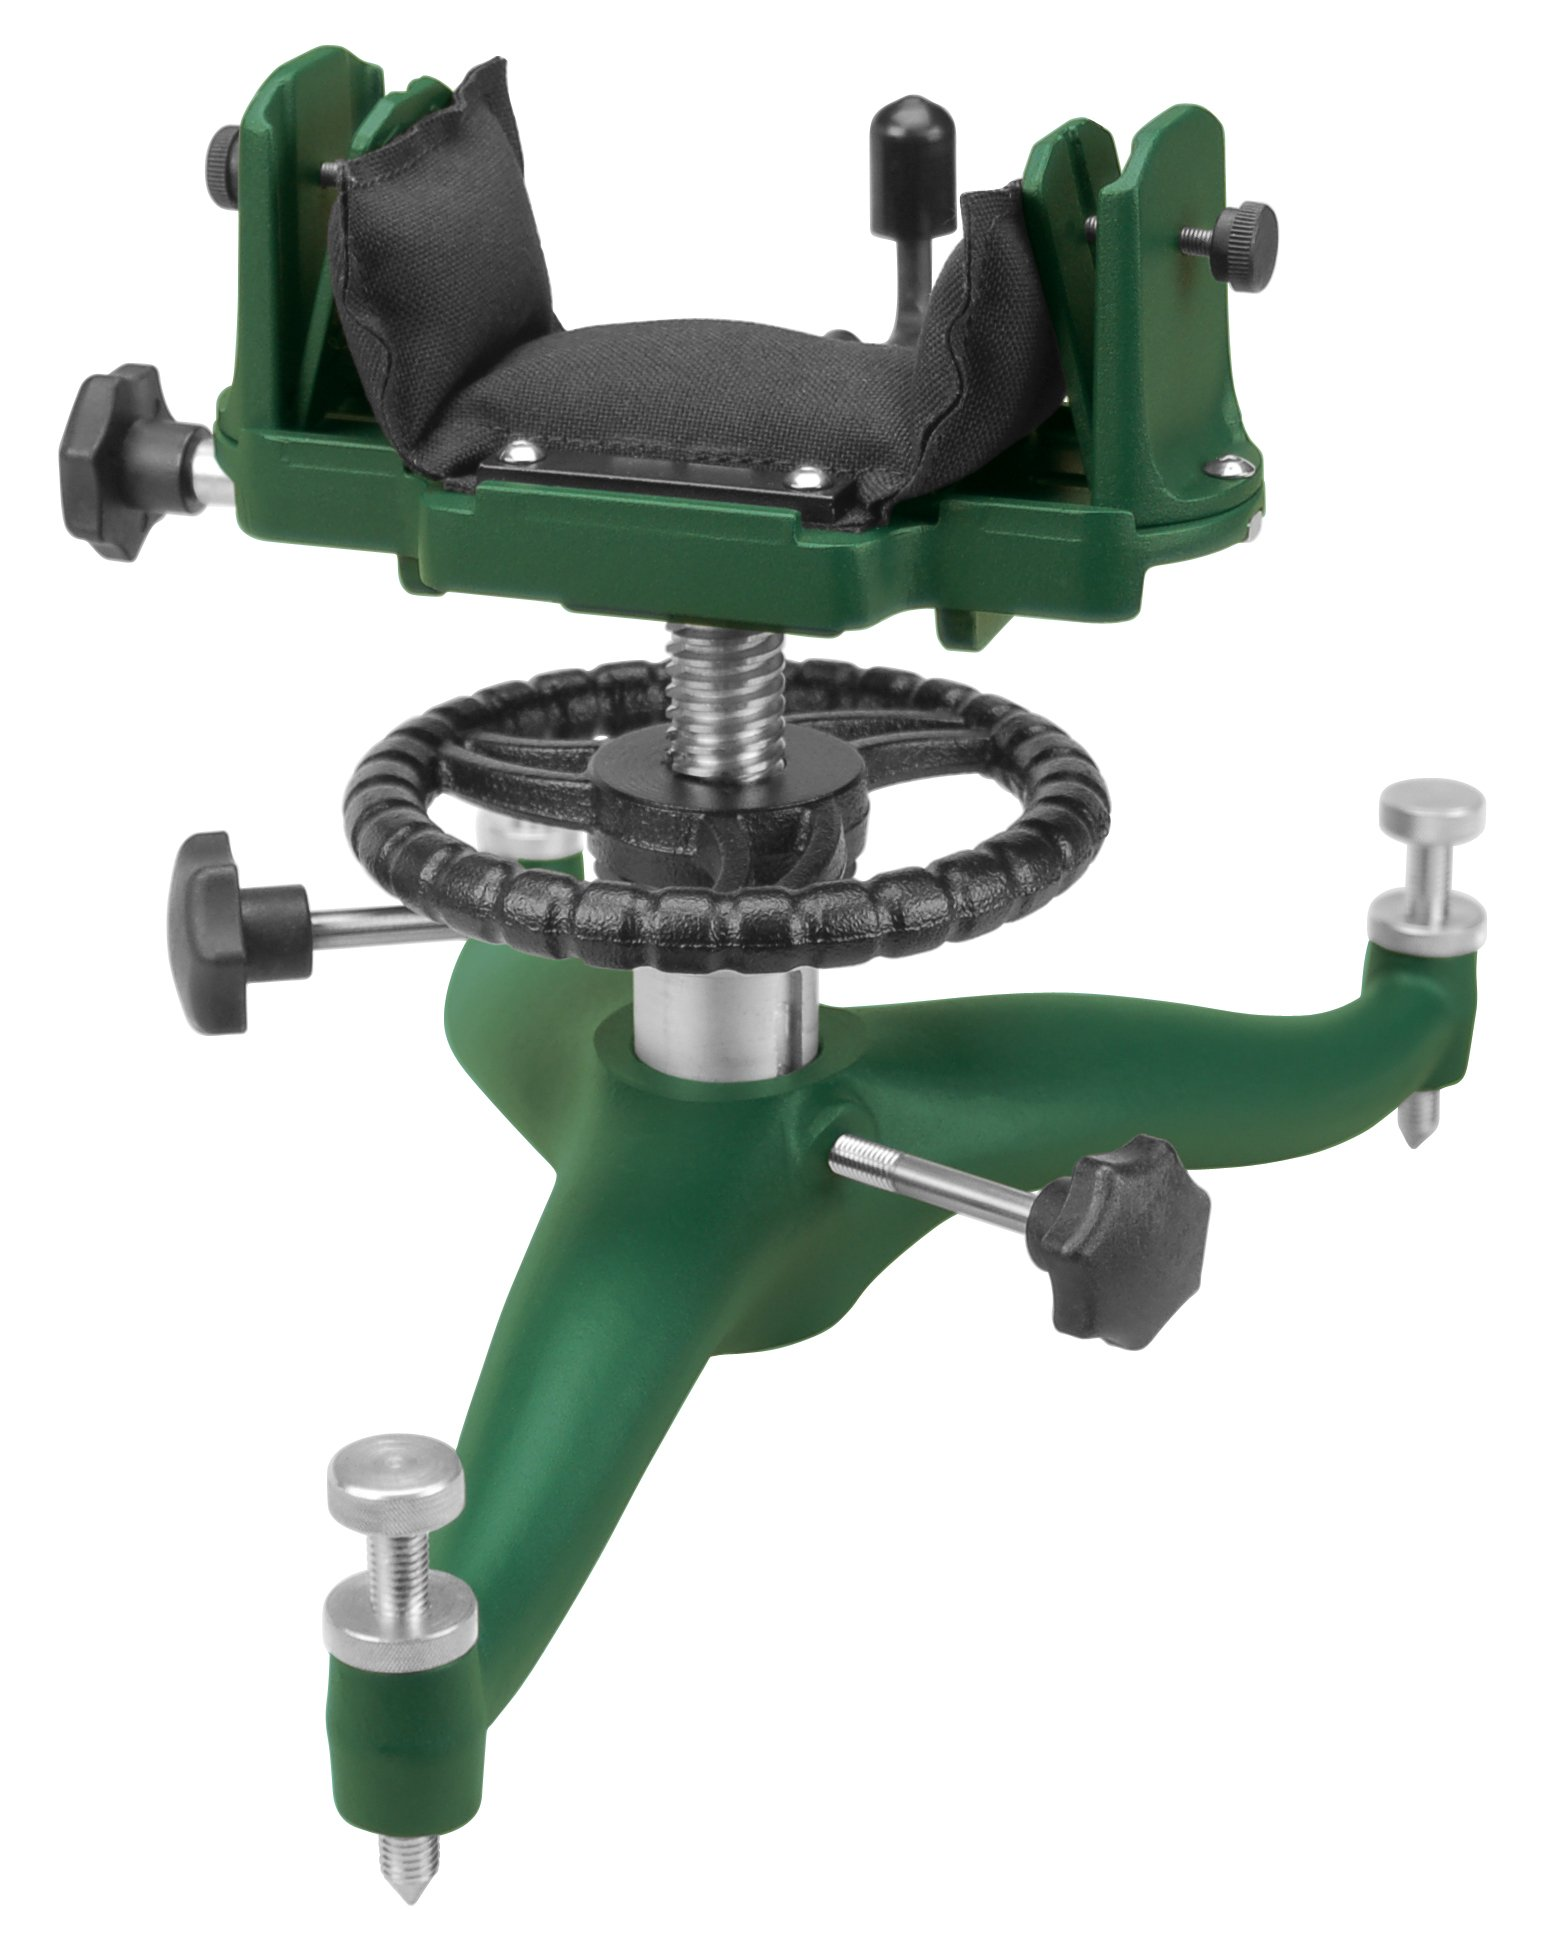 Caldwell The Rock BR Competition Front Shooting Rest